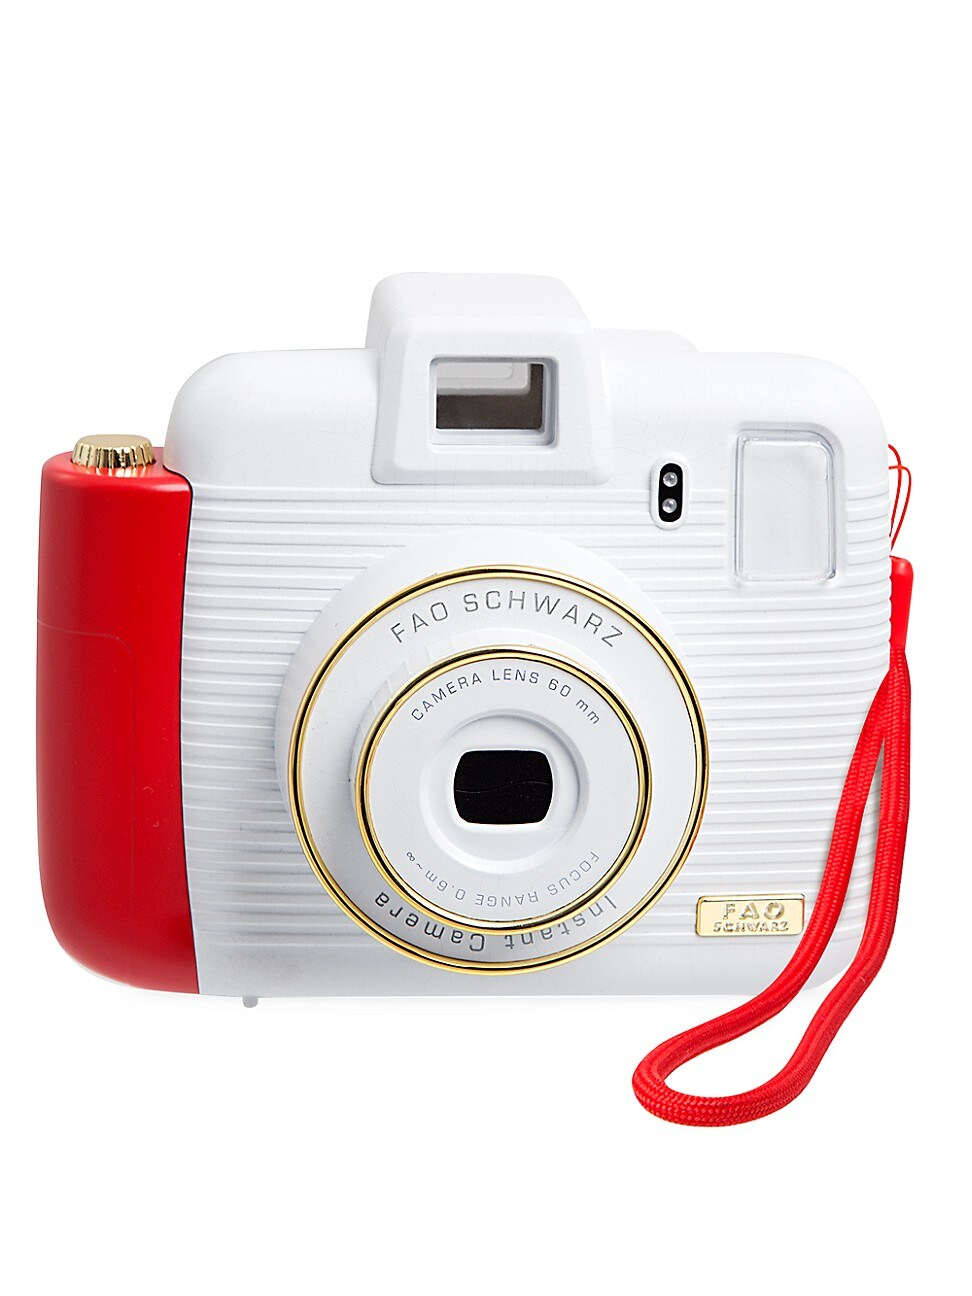 Capture memories instantly. The FAO Schwarz Instant Camera captures memories in instant photos and prints them out on the spot! It\\\'s the modern concept of vintage instant cameras - snap a photo and have a real printed keepsake in seconds! The instant camera has a built-in flash feature, as well as five different brightness settings for use in different lighting levels both outdoors and indoor. Includes instant camera and 2-AA batteries Flash and environmental lighting functions Built-in telescop